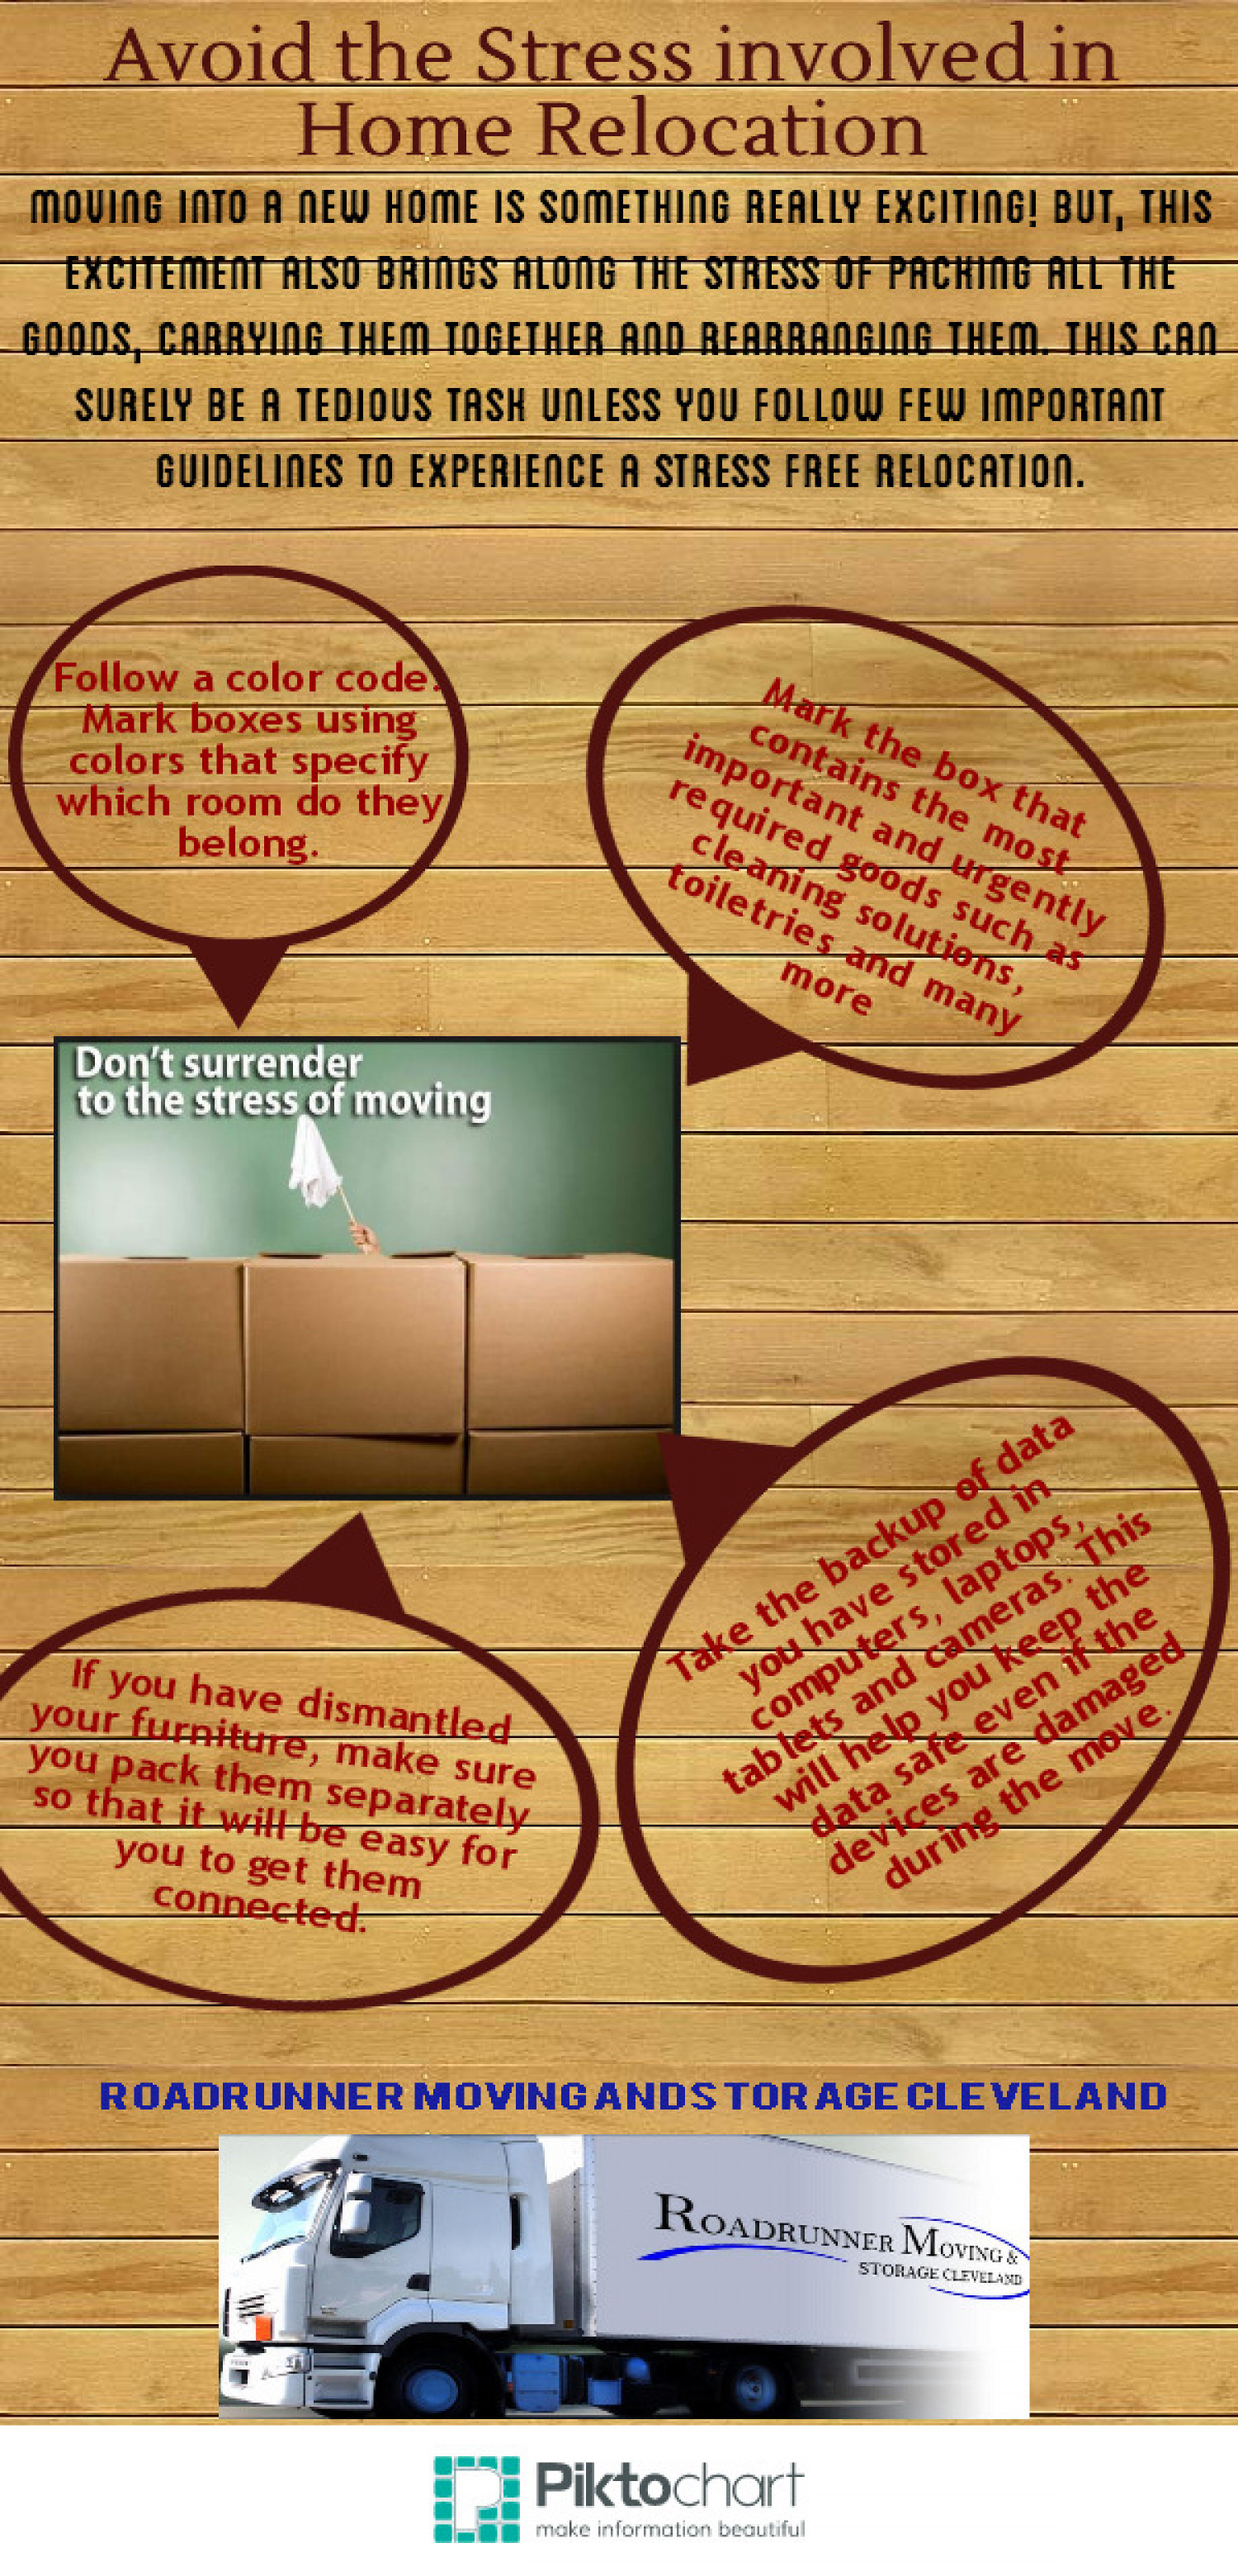 Avoid the Stress involved in Home Relocation Infographic